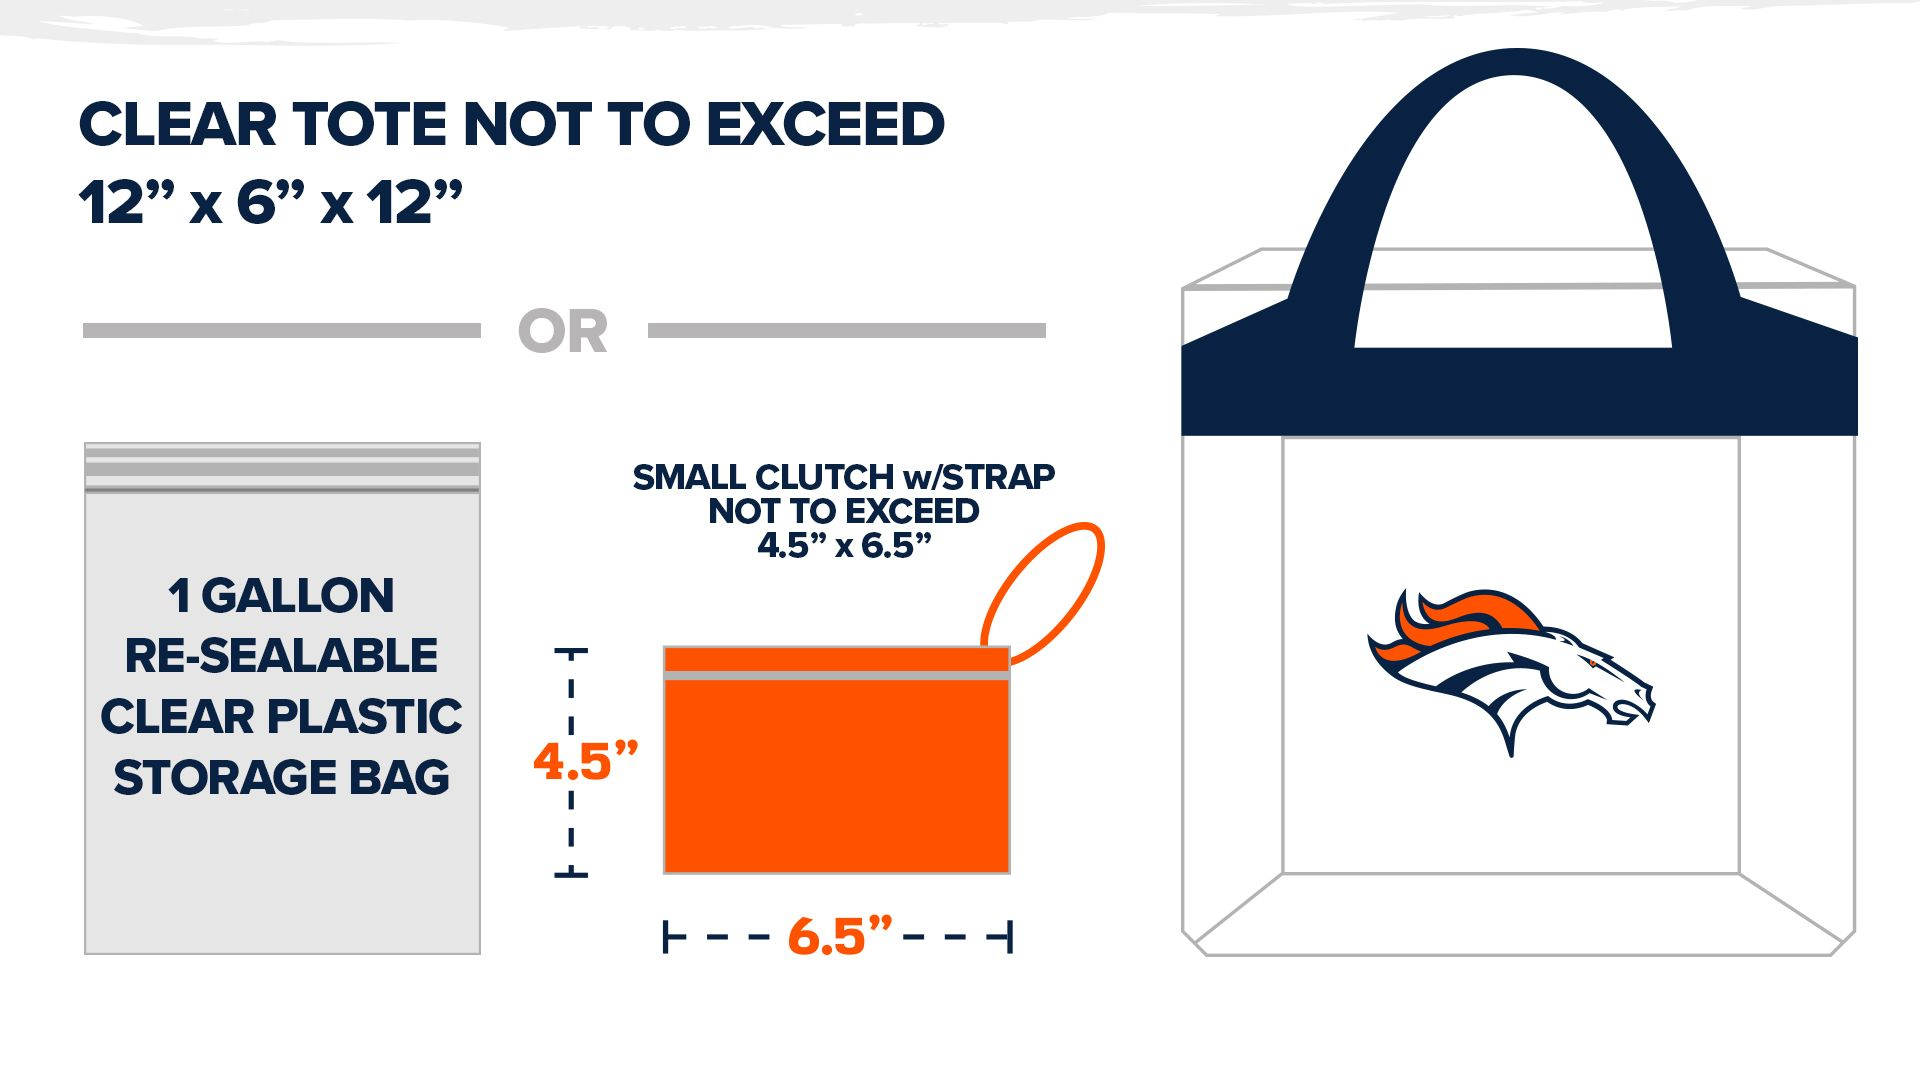 NFL CLEAR BAG POLICY / PROHIBITED ITEMS